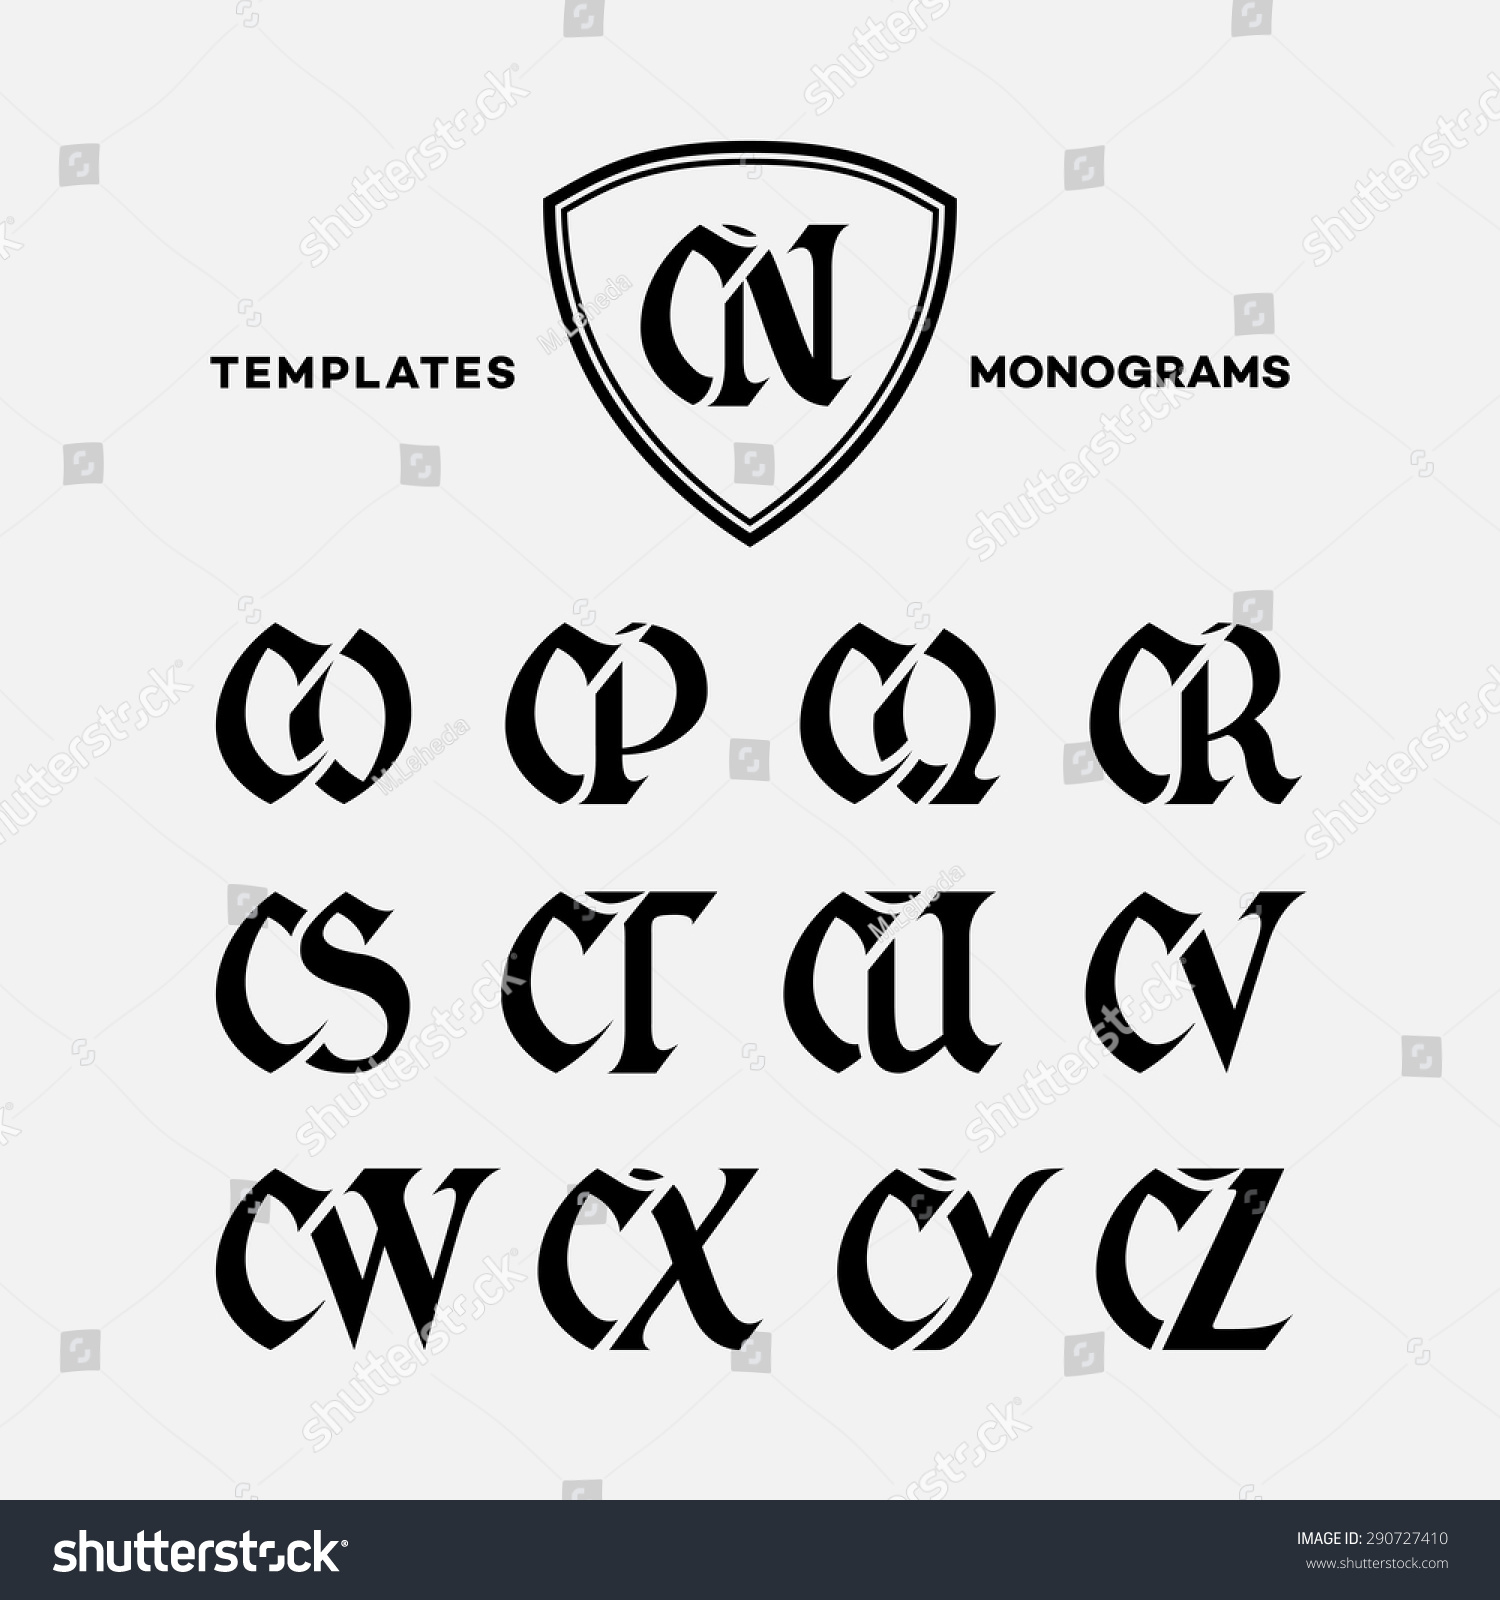 Tj initial luxury ornament monogram logo stock vector - Monogram Design Template With Combinations Of Capital Letters Cn Co Cp Cq Cr Cs Ct Cu